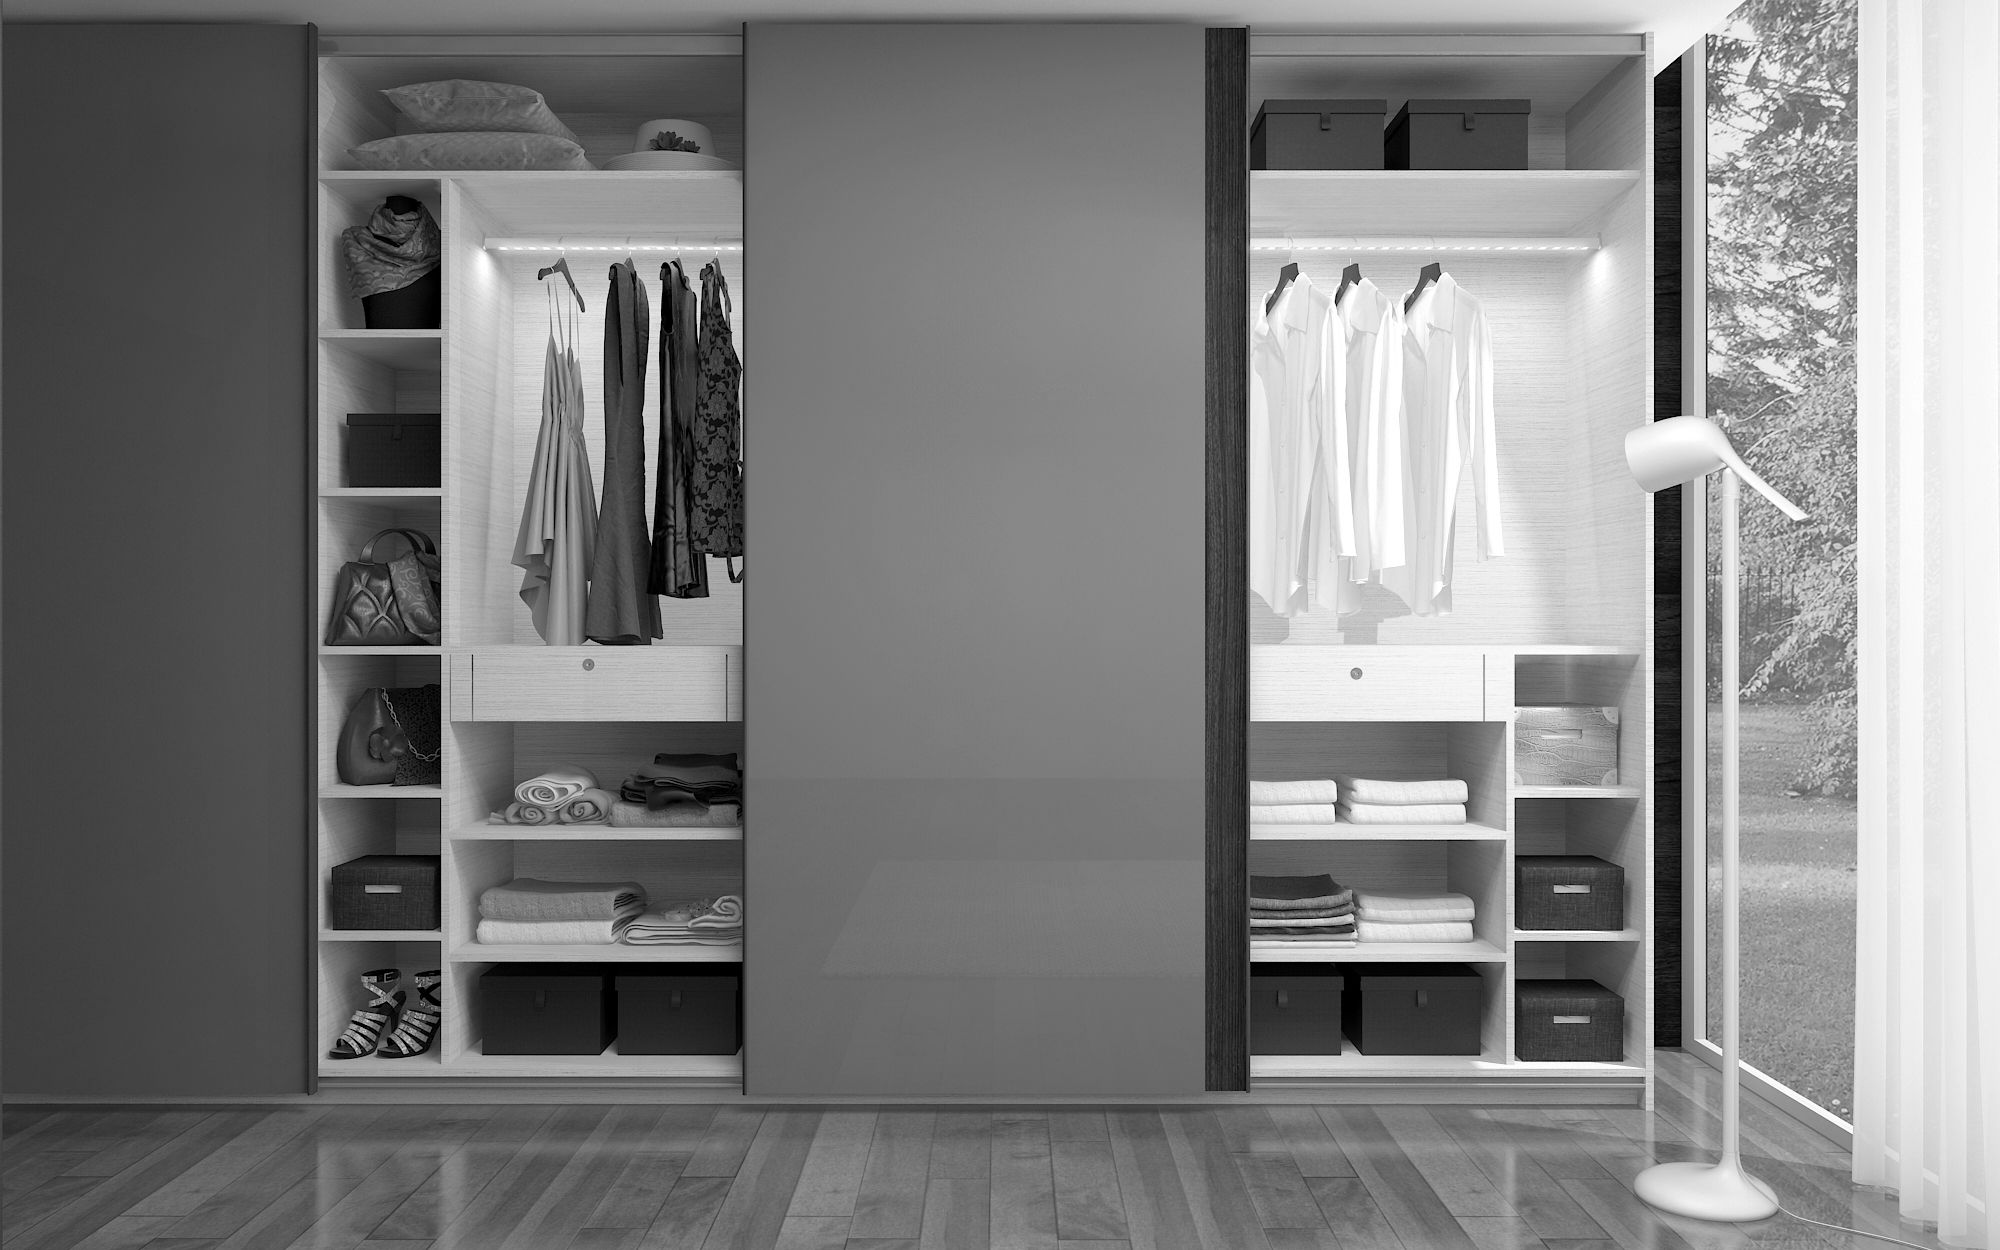 24 Cool Bedrooms Wardrobes Sample Among The Best Benefits Of Fitted Wardrobes Is The Wardrobes Is De Bedroom Wardrobe Modern Bedroom Wardrobe Awesome Bedrooms